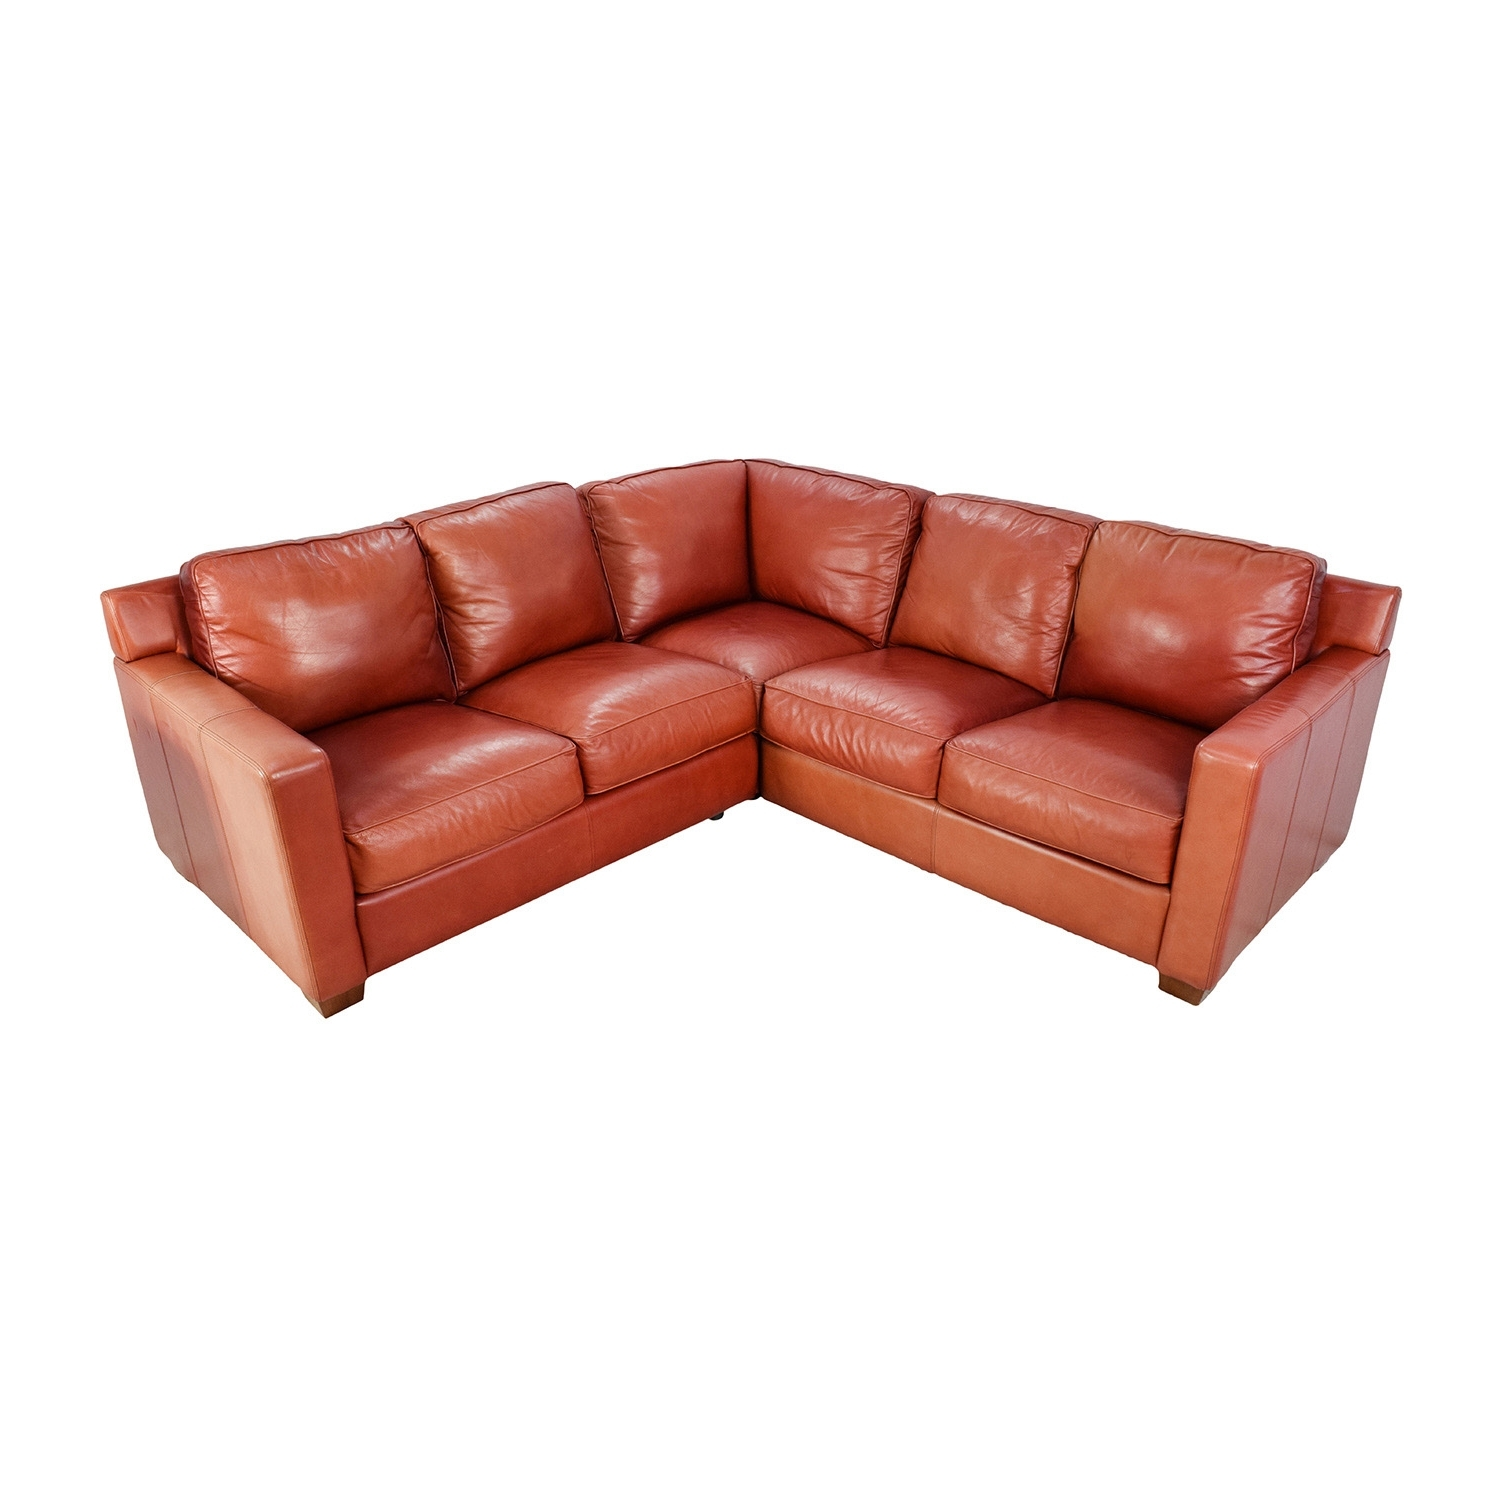 [%68% Off – Thomasville Thomasville Red Leather Sectional / Sofas With Widely Used Thomasville Sectional Sofas|Thomasville Sectional Sofas Regarding Most Current 68% Off – Thomasville Thomasville Red Leather Sectional / Sofas|Fashionable Thomasville Sectional Sofas For 68% Off – Thomasville Thomasville Red Leather Sectional / Sofas|Recent 68% Off – Thomasville Thomasville Red Leather Sectional / Sofas Inside Thomasville Sectional Sofas%] (View 14 of 15)